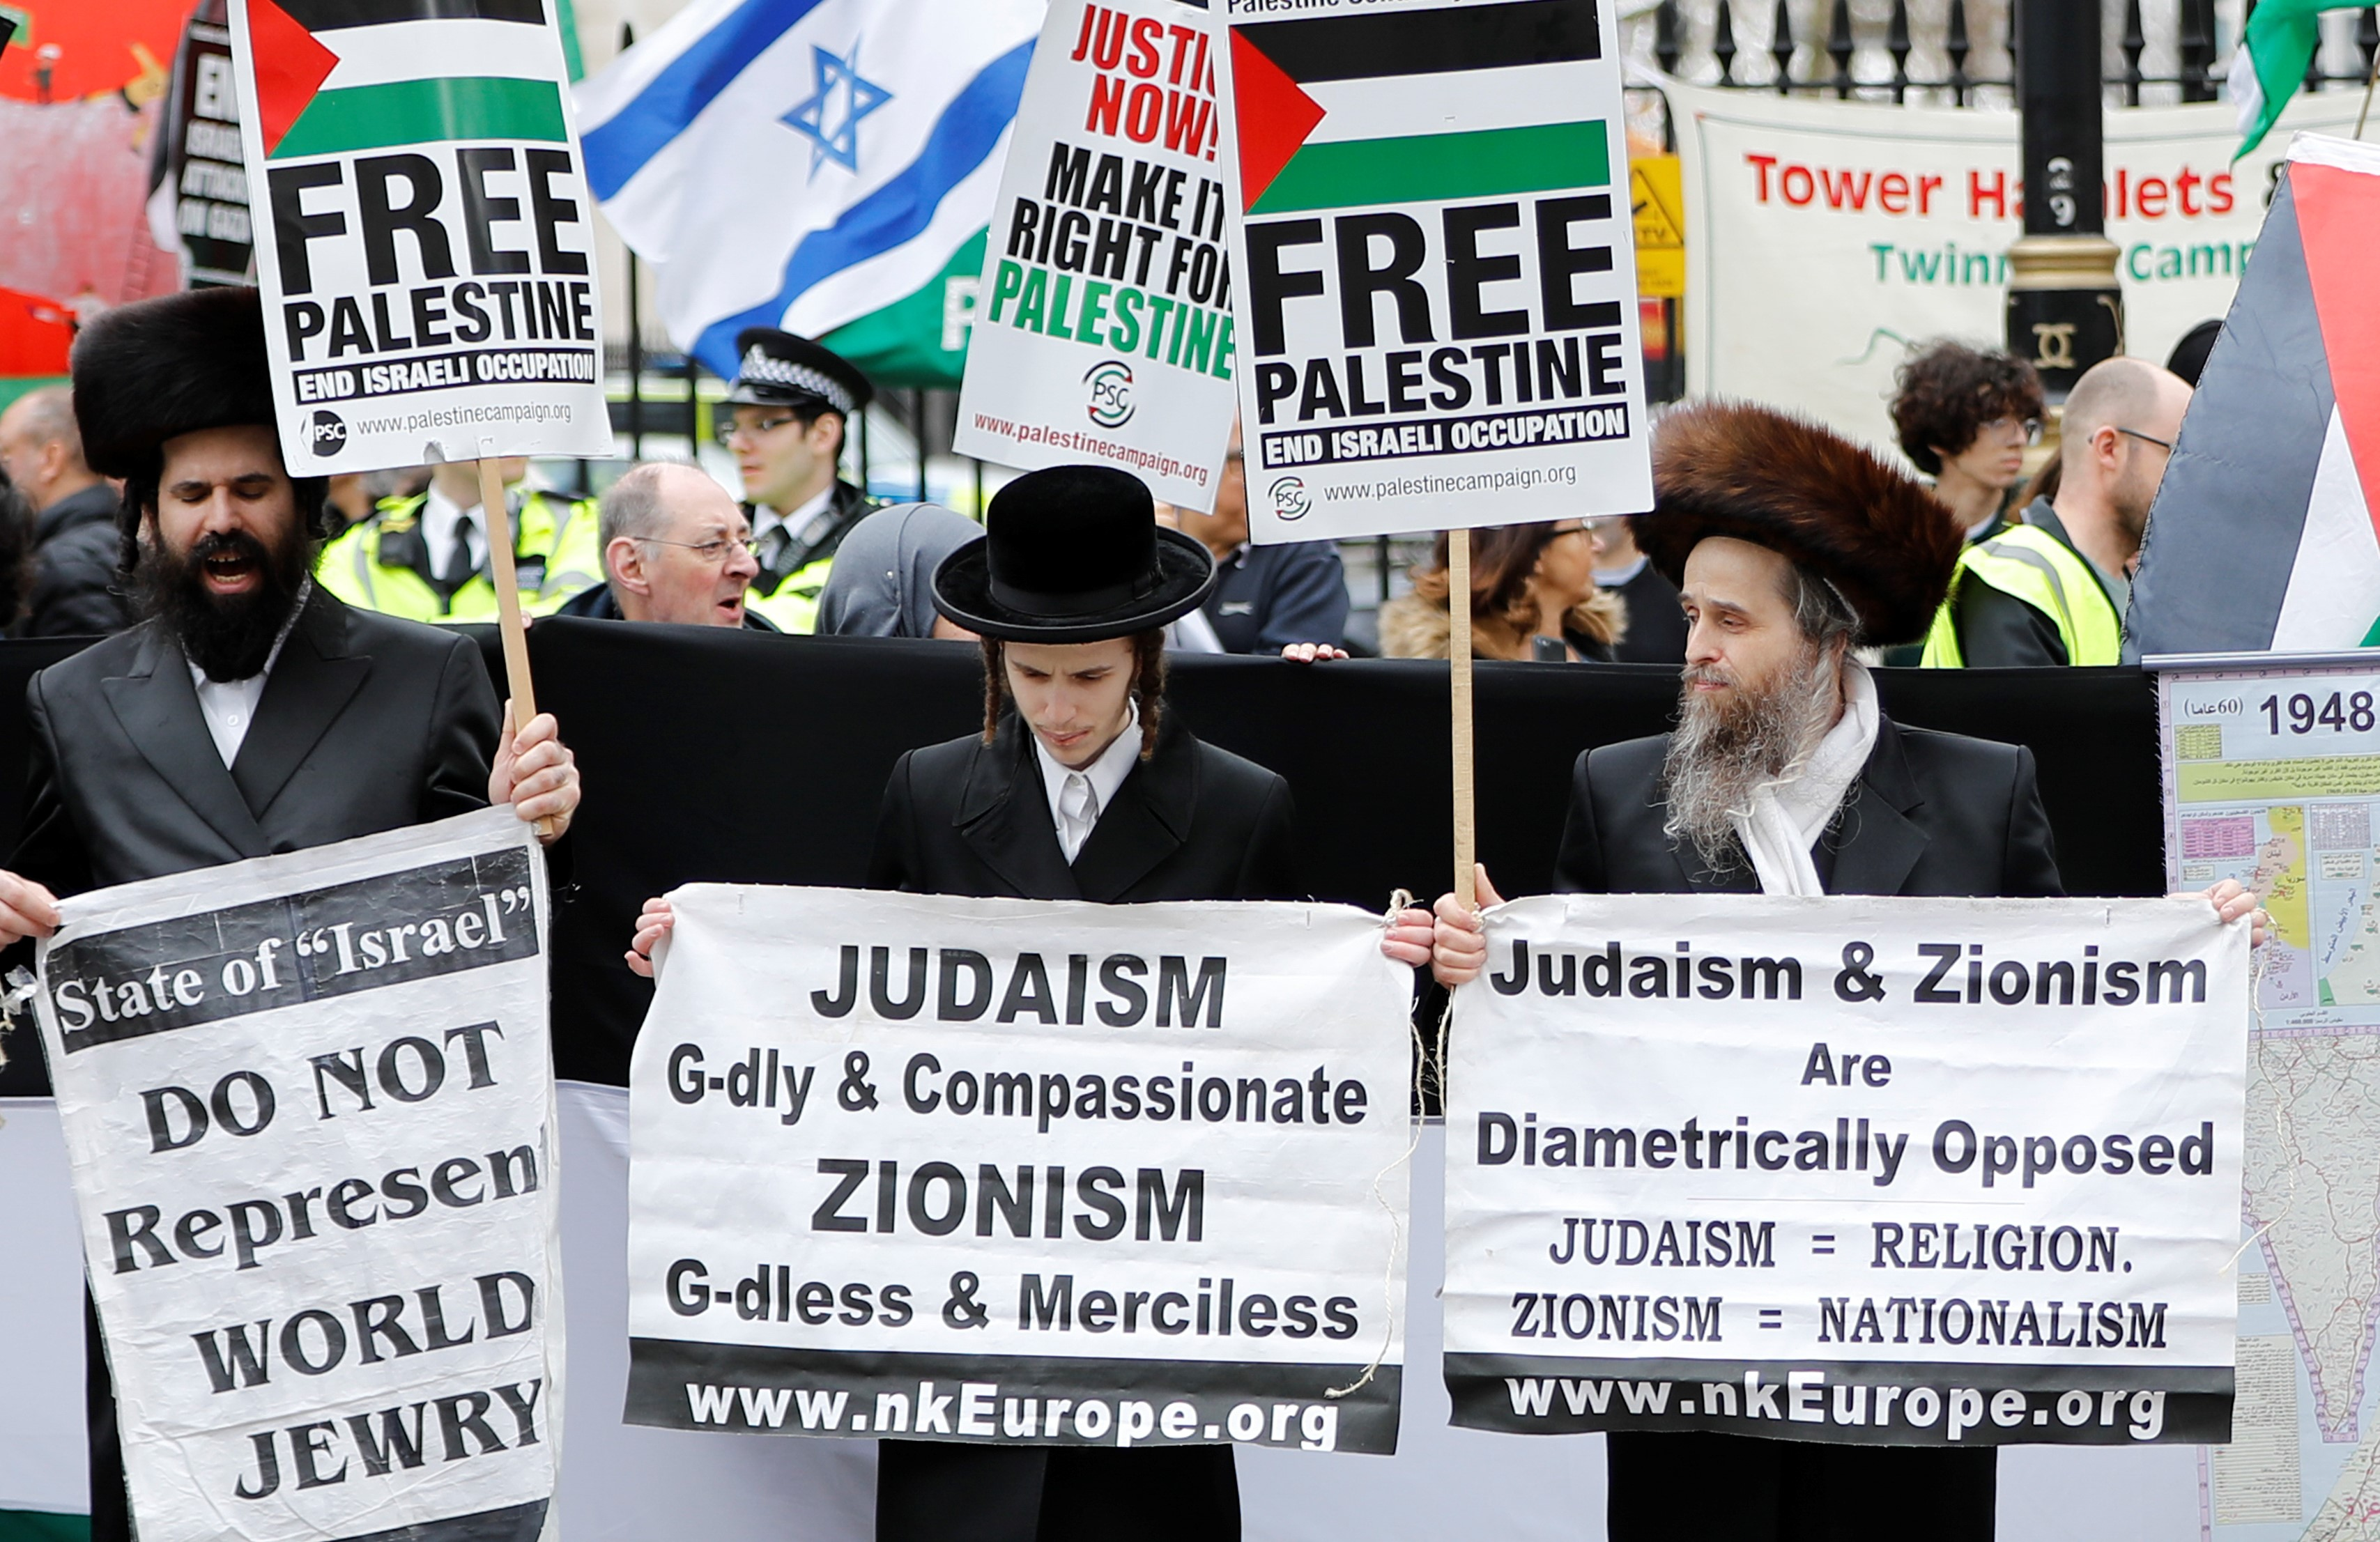 Ultra-Orthodox Jewish anti-Zionism protesters join a demonstration in central London in support of Palestinians in Gaza on 7 April 2018 (AFP)